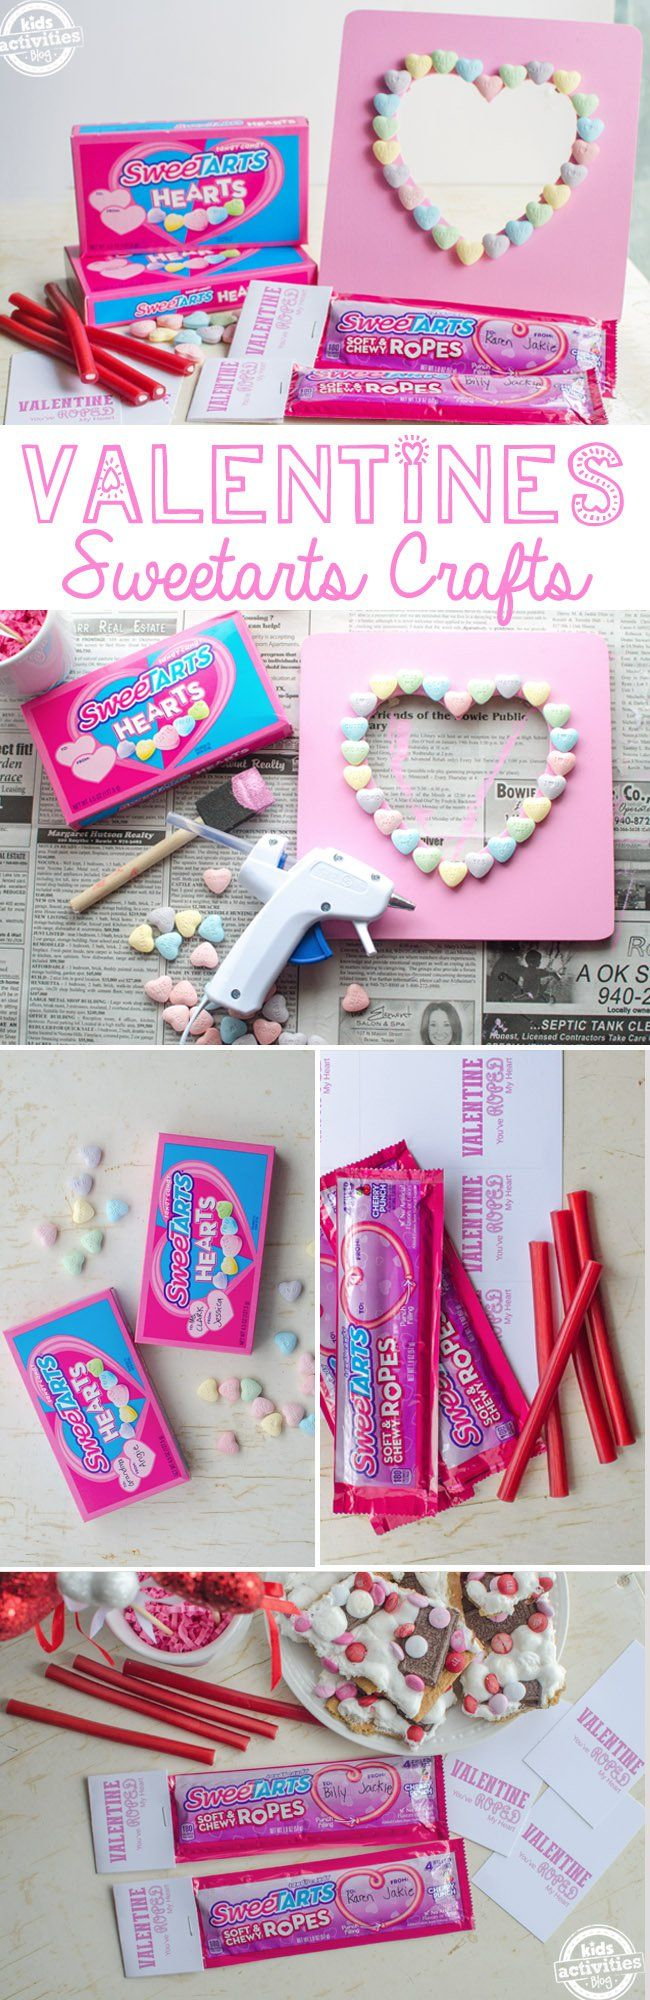 sweetarts hearts craft